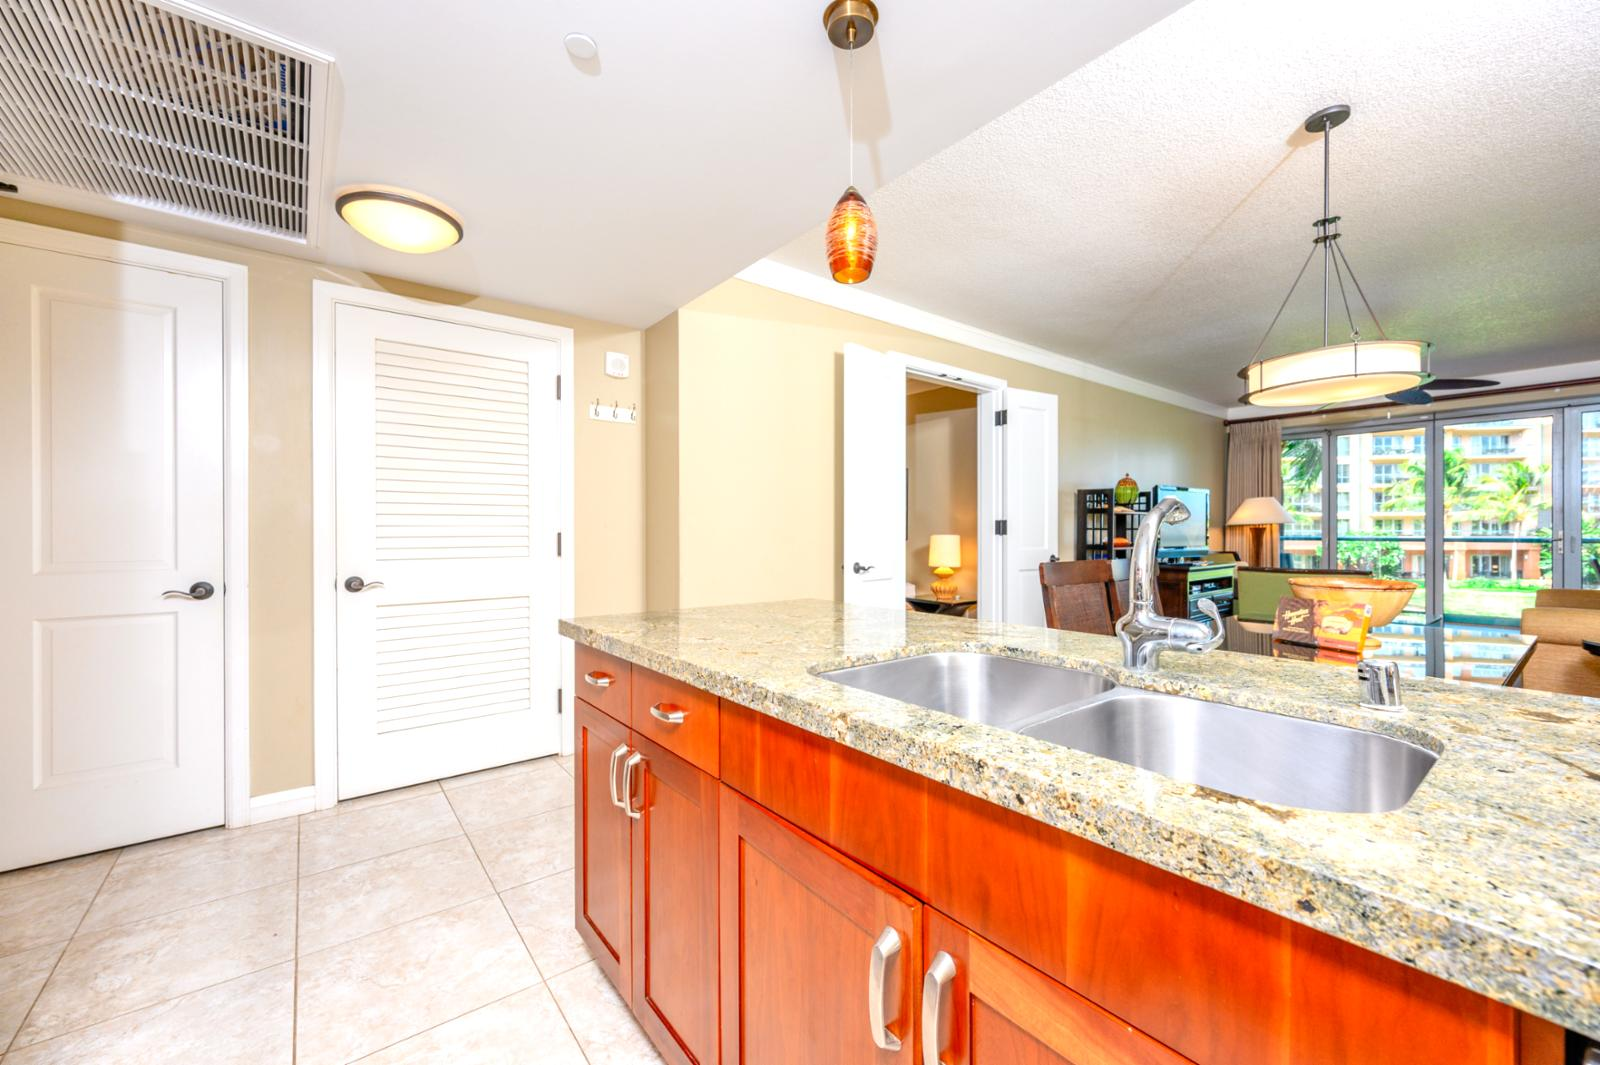 Large gourmet kitchen with dual sink and full size bosch dishwasher for easy clean up.